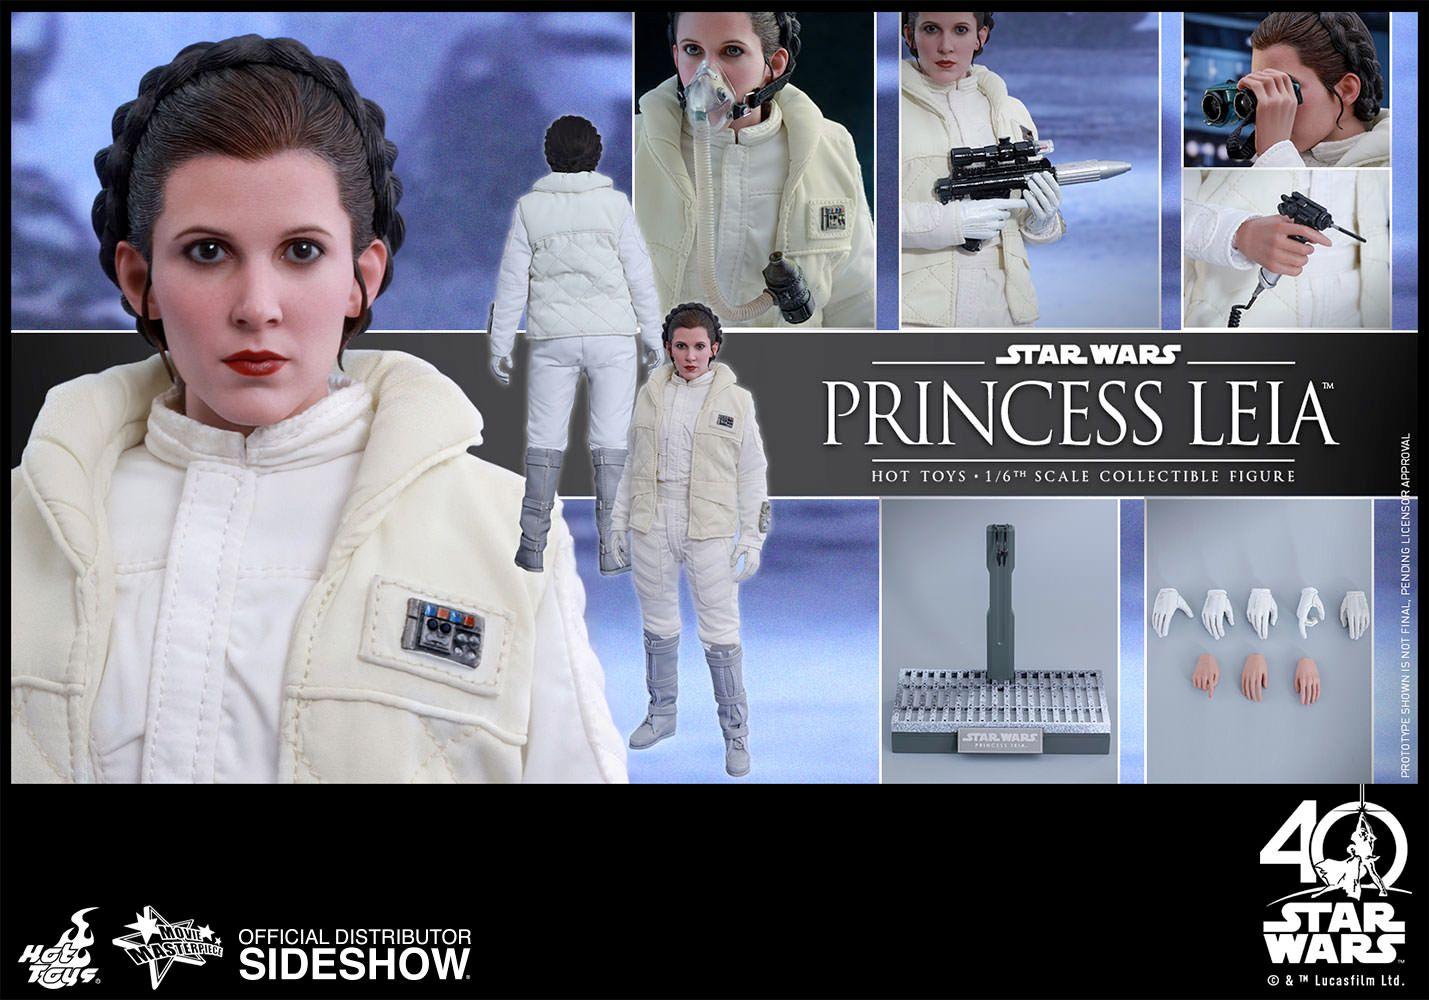 Hot-Toys-Princess-Leia-Collectible-Figure-Episode-V-13